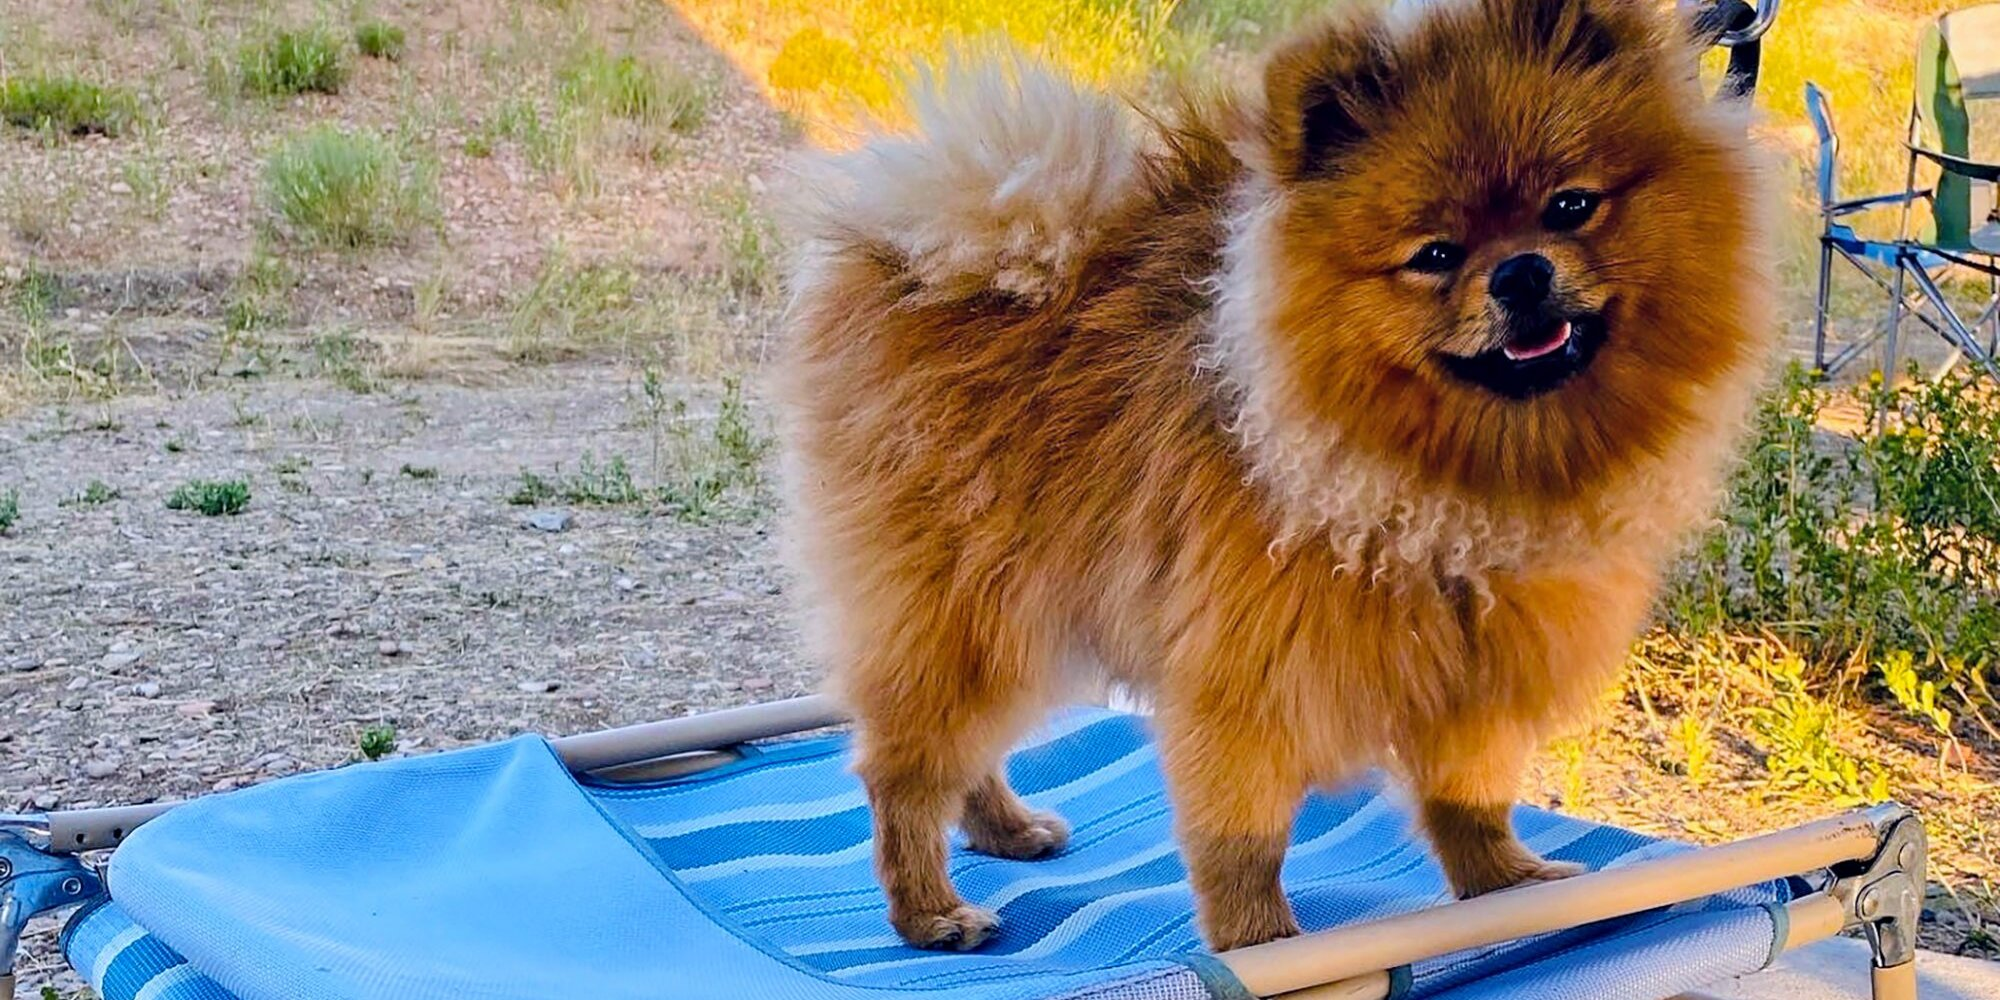 Meet Milo, the Most Athletic Pomeranian We Know